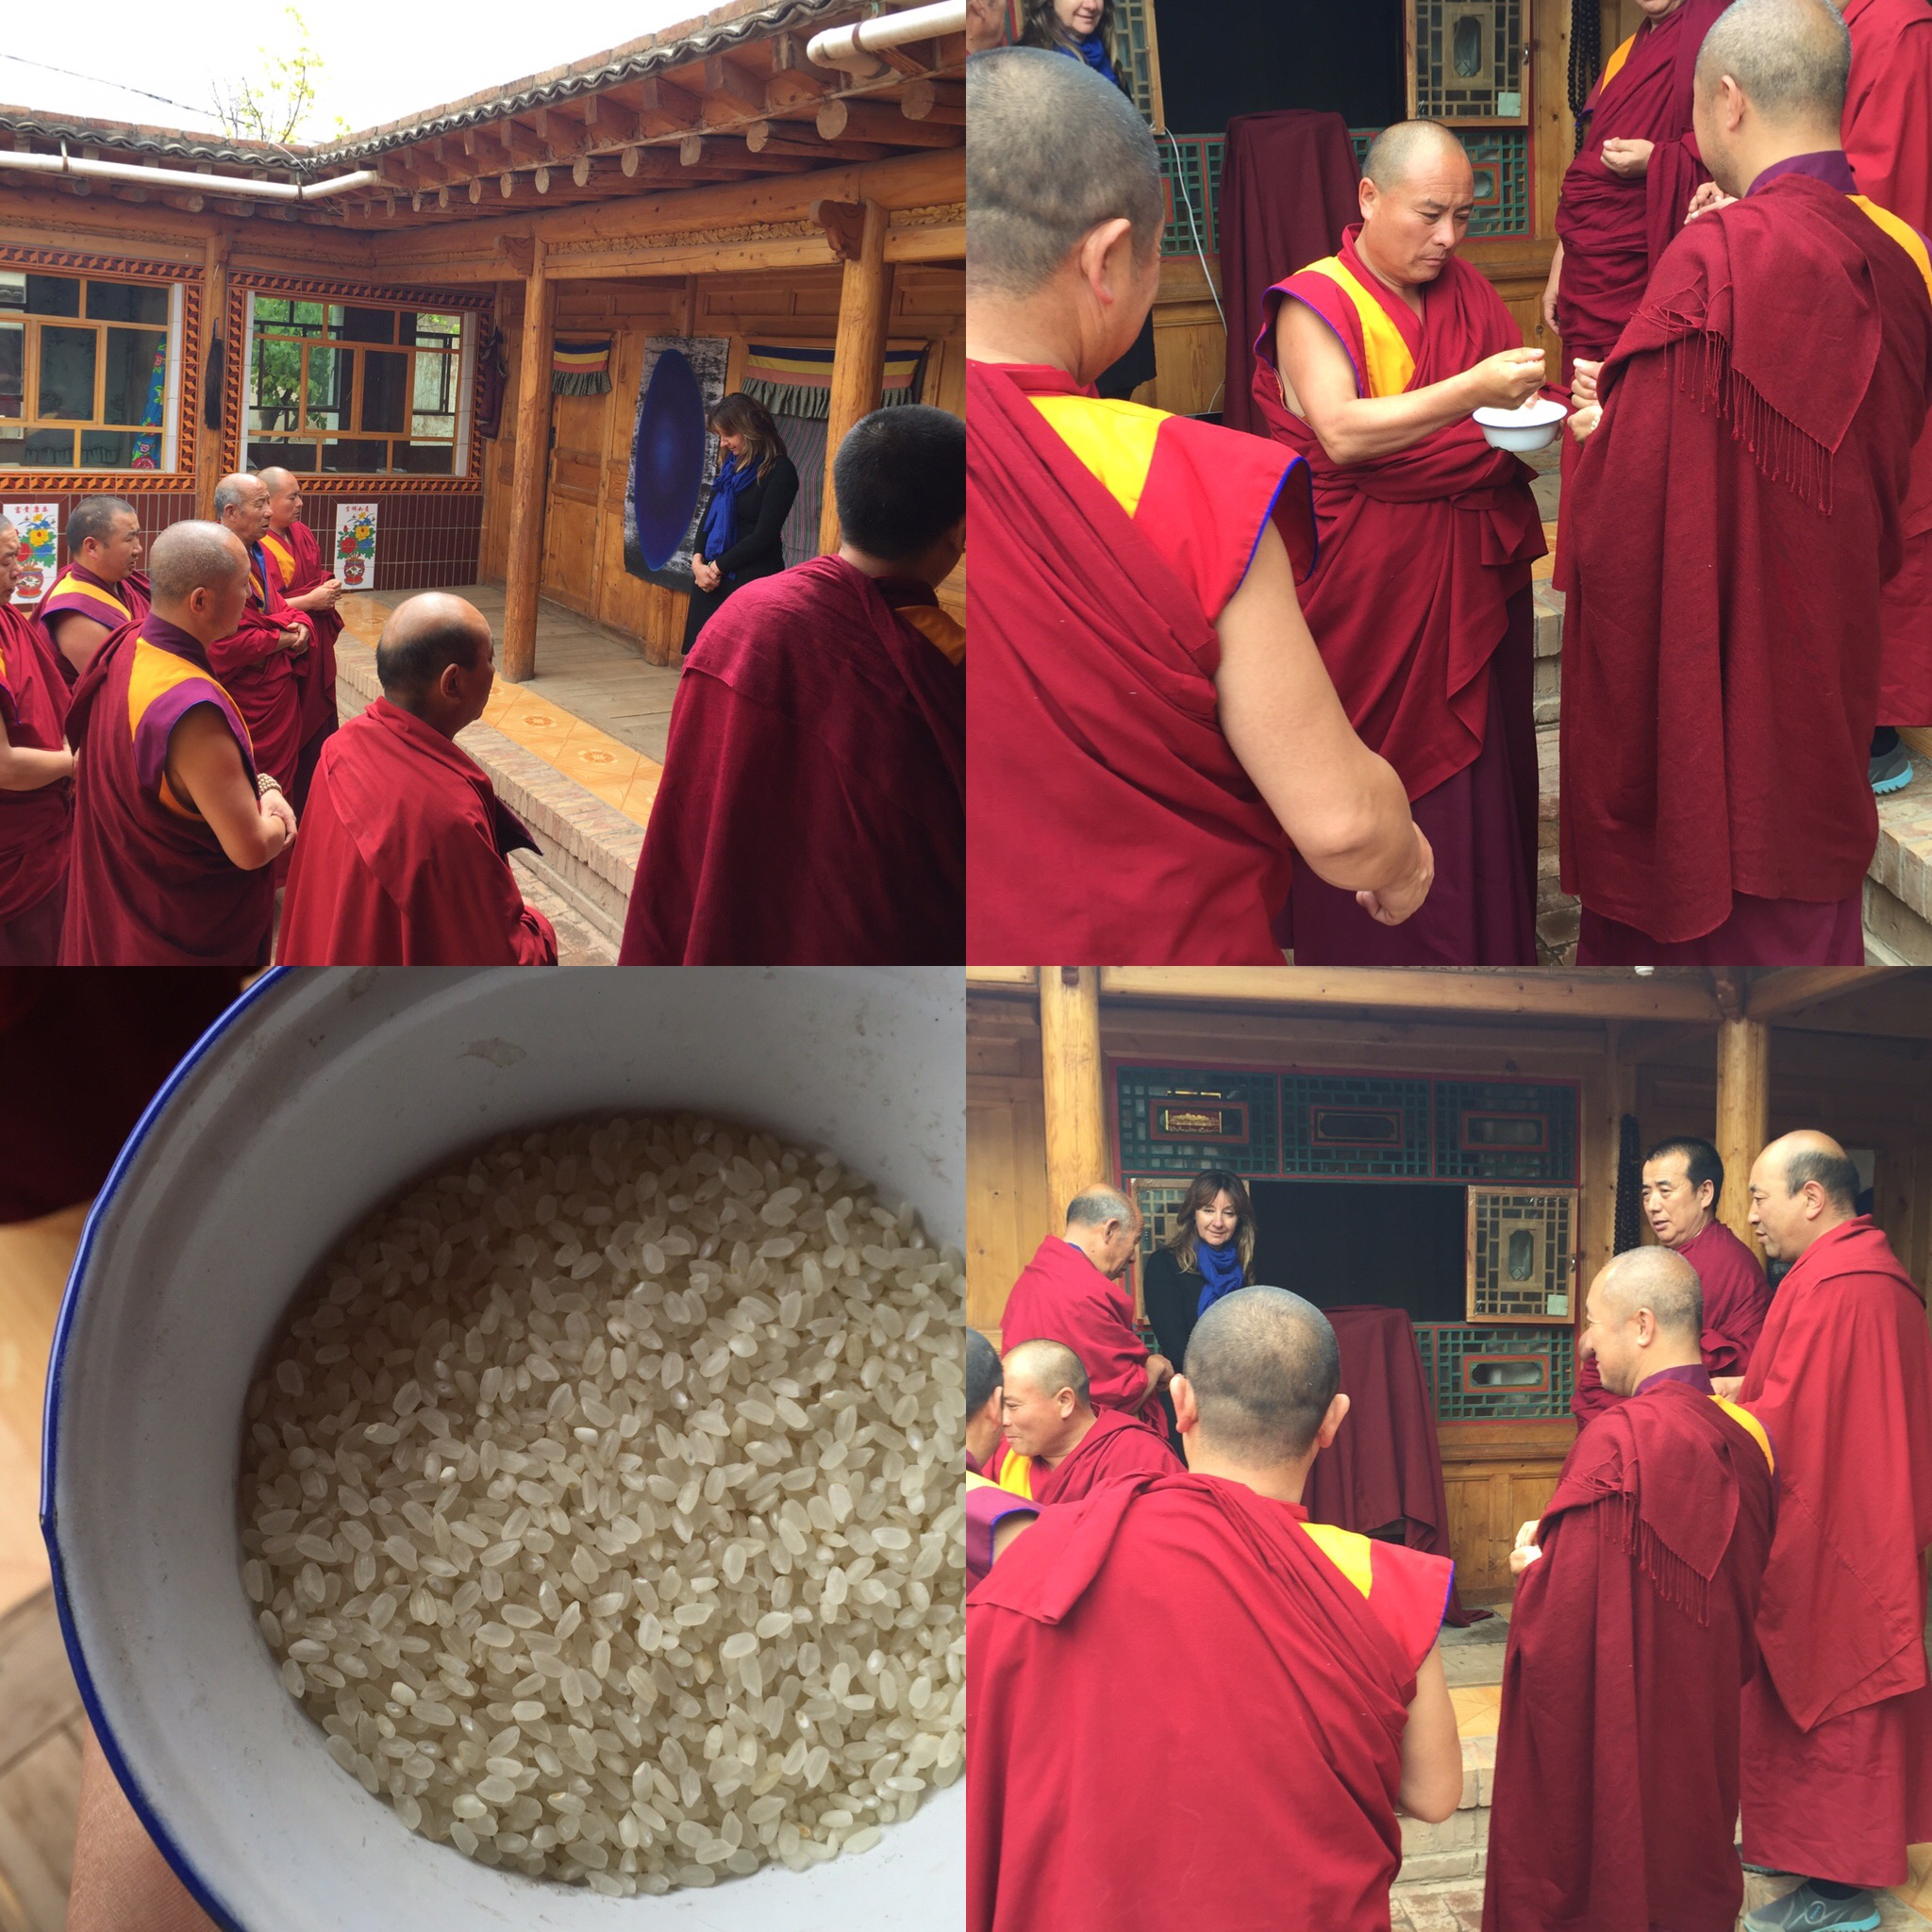 4-installing-my-work-in-temple-grounds-and-receiving-a-blessing-ceremony-in-wutun-monastery-tongran